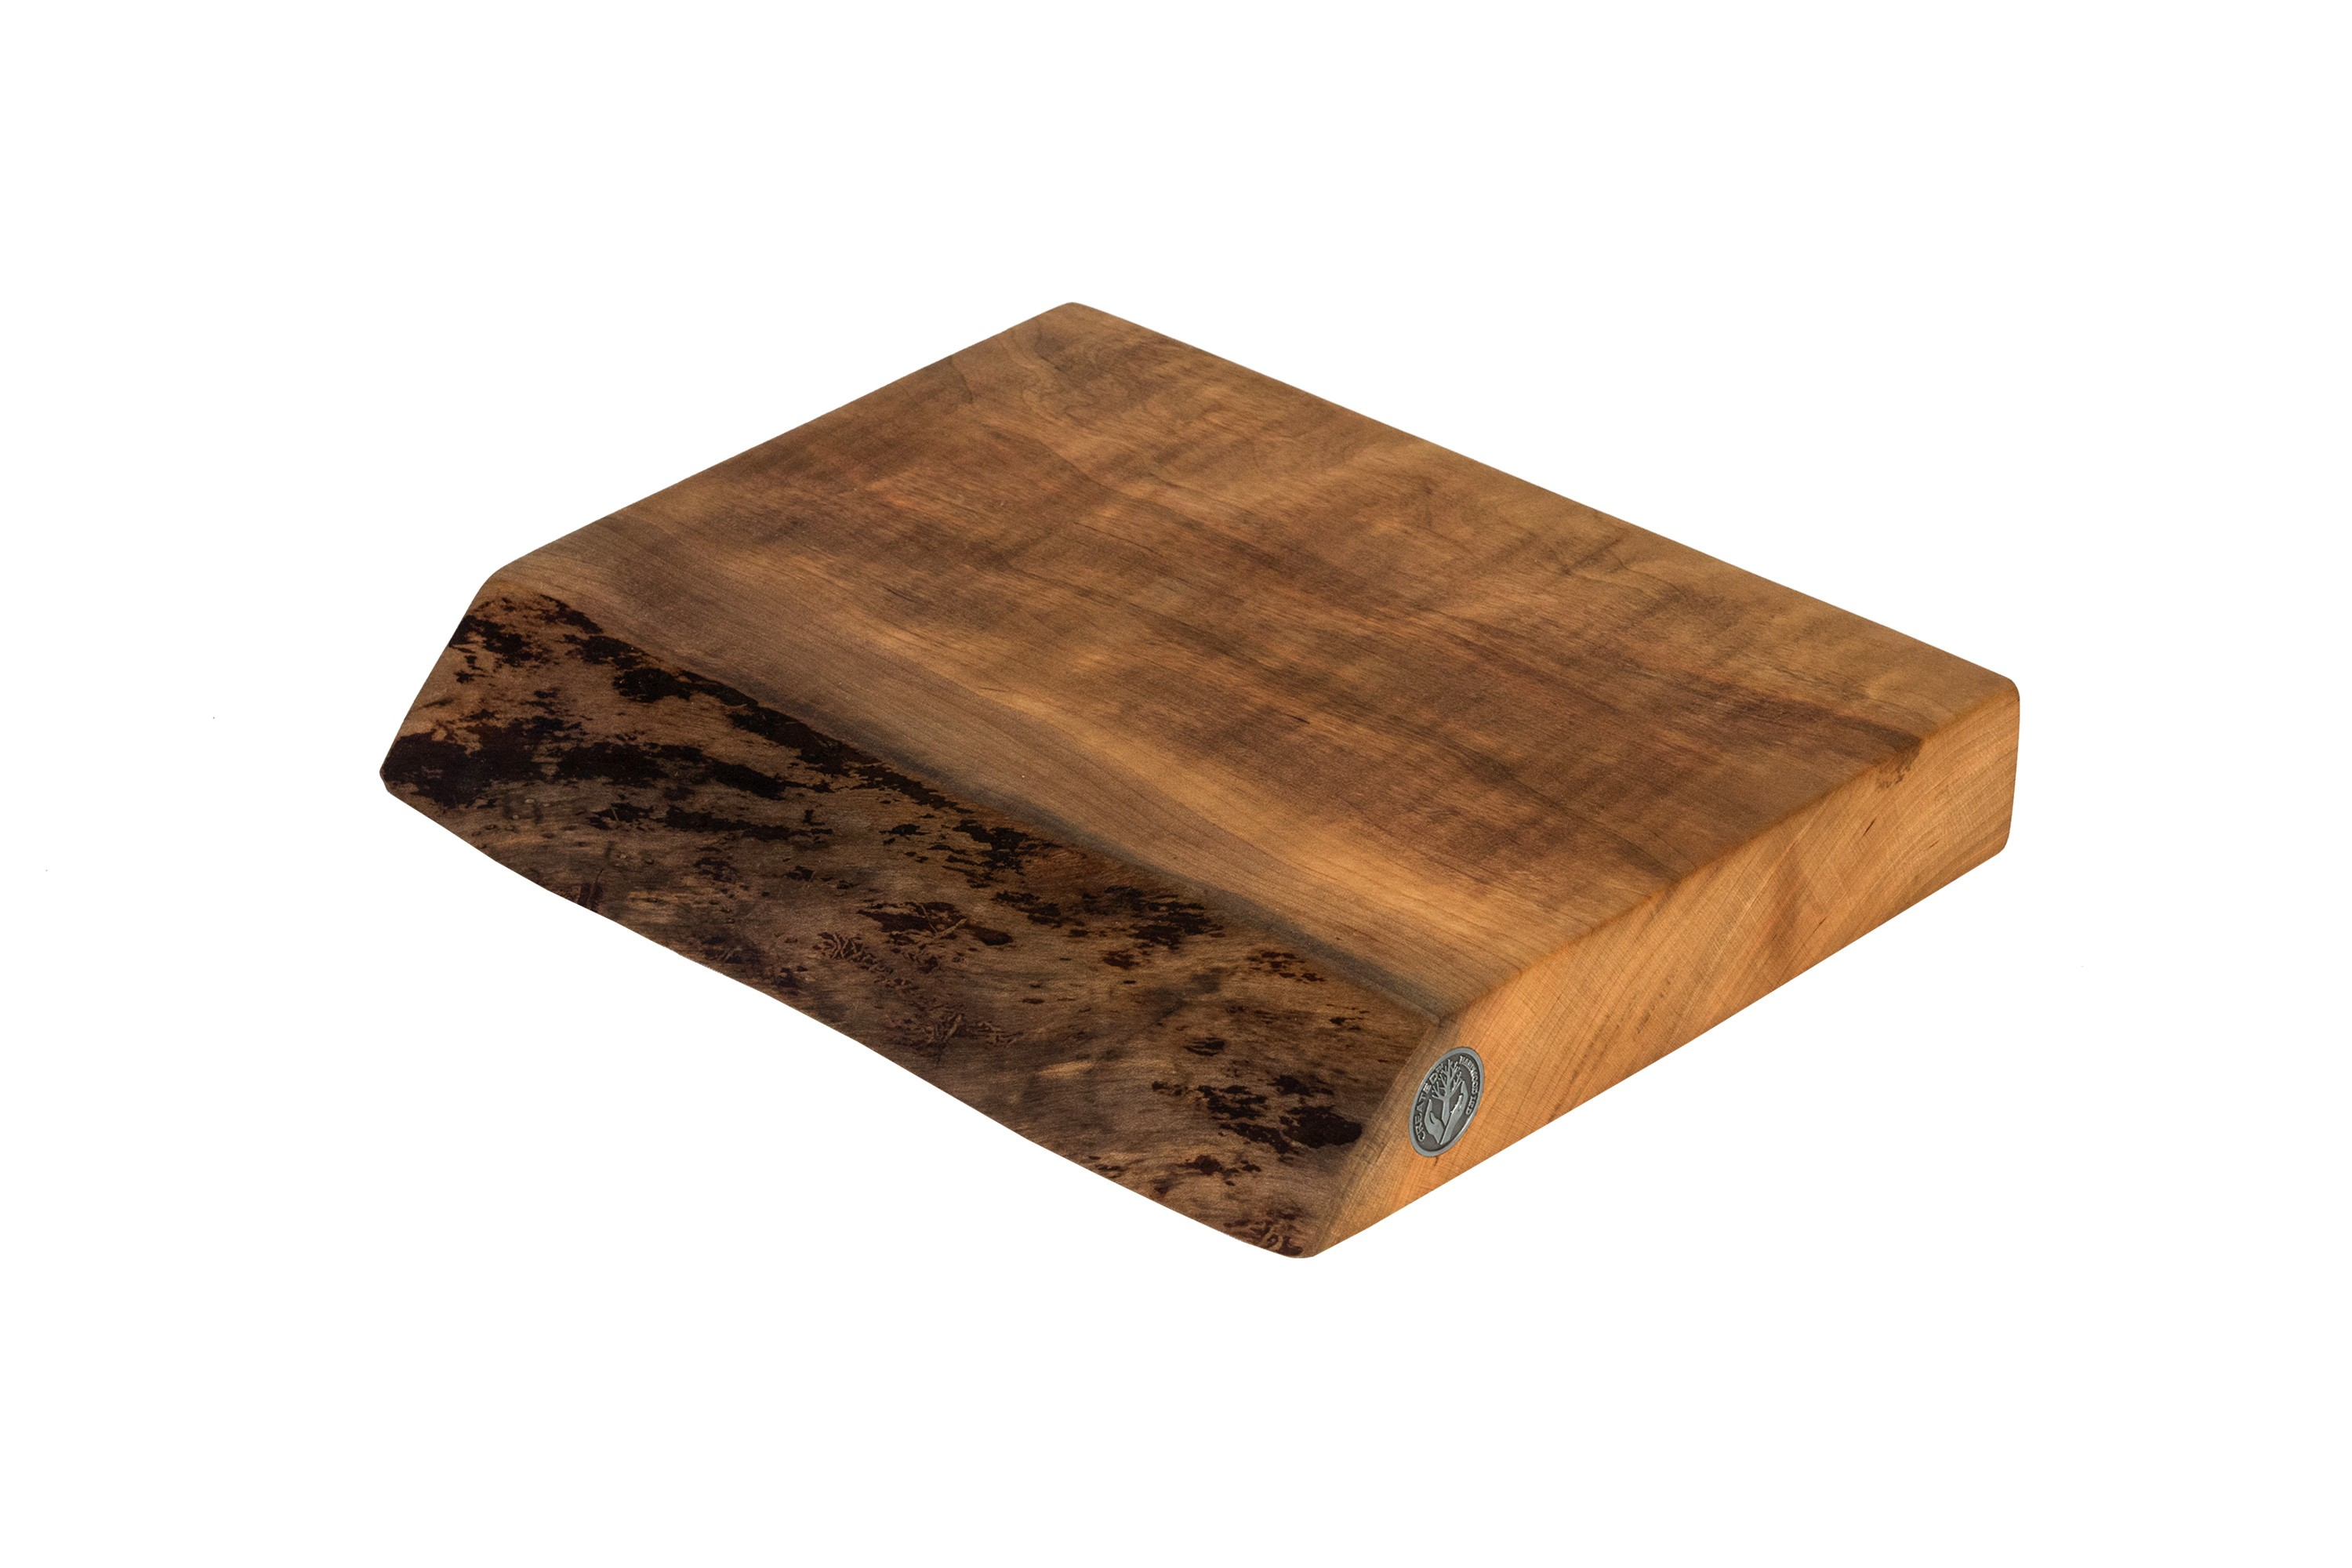 Live Edge Cherry Cutting Board #079- 12